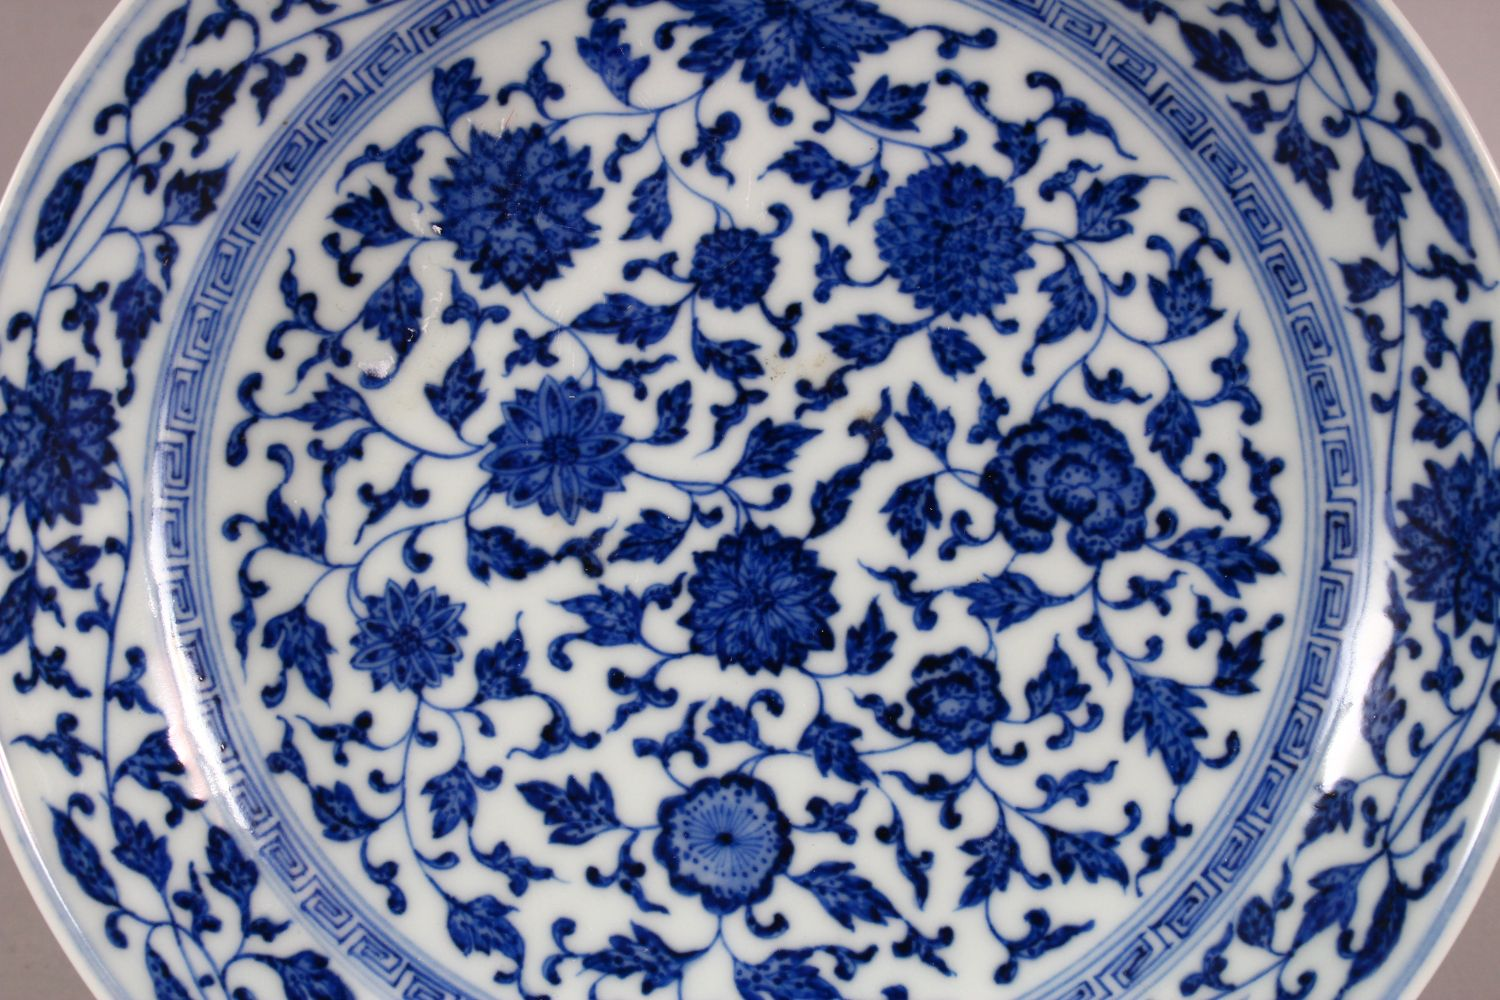 A CHINESE BLUE & WHITE PORCELAIN LOTUS DISH, decorated with sprays of lotus, the underside with a - Image 2 of 5